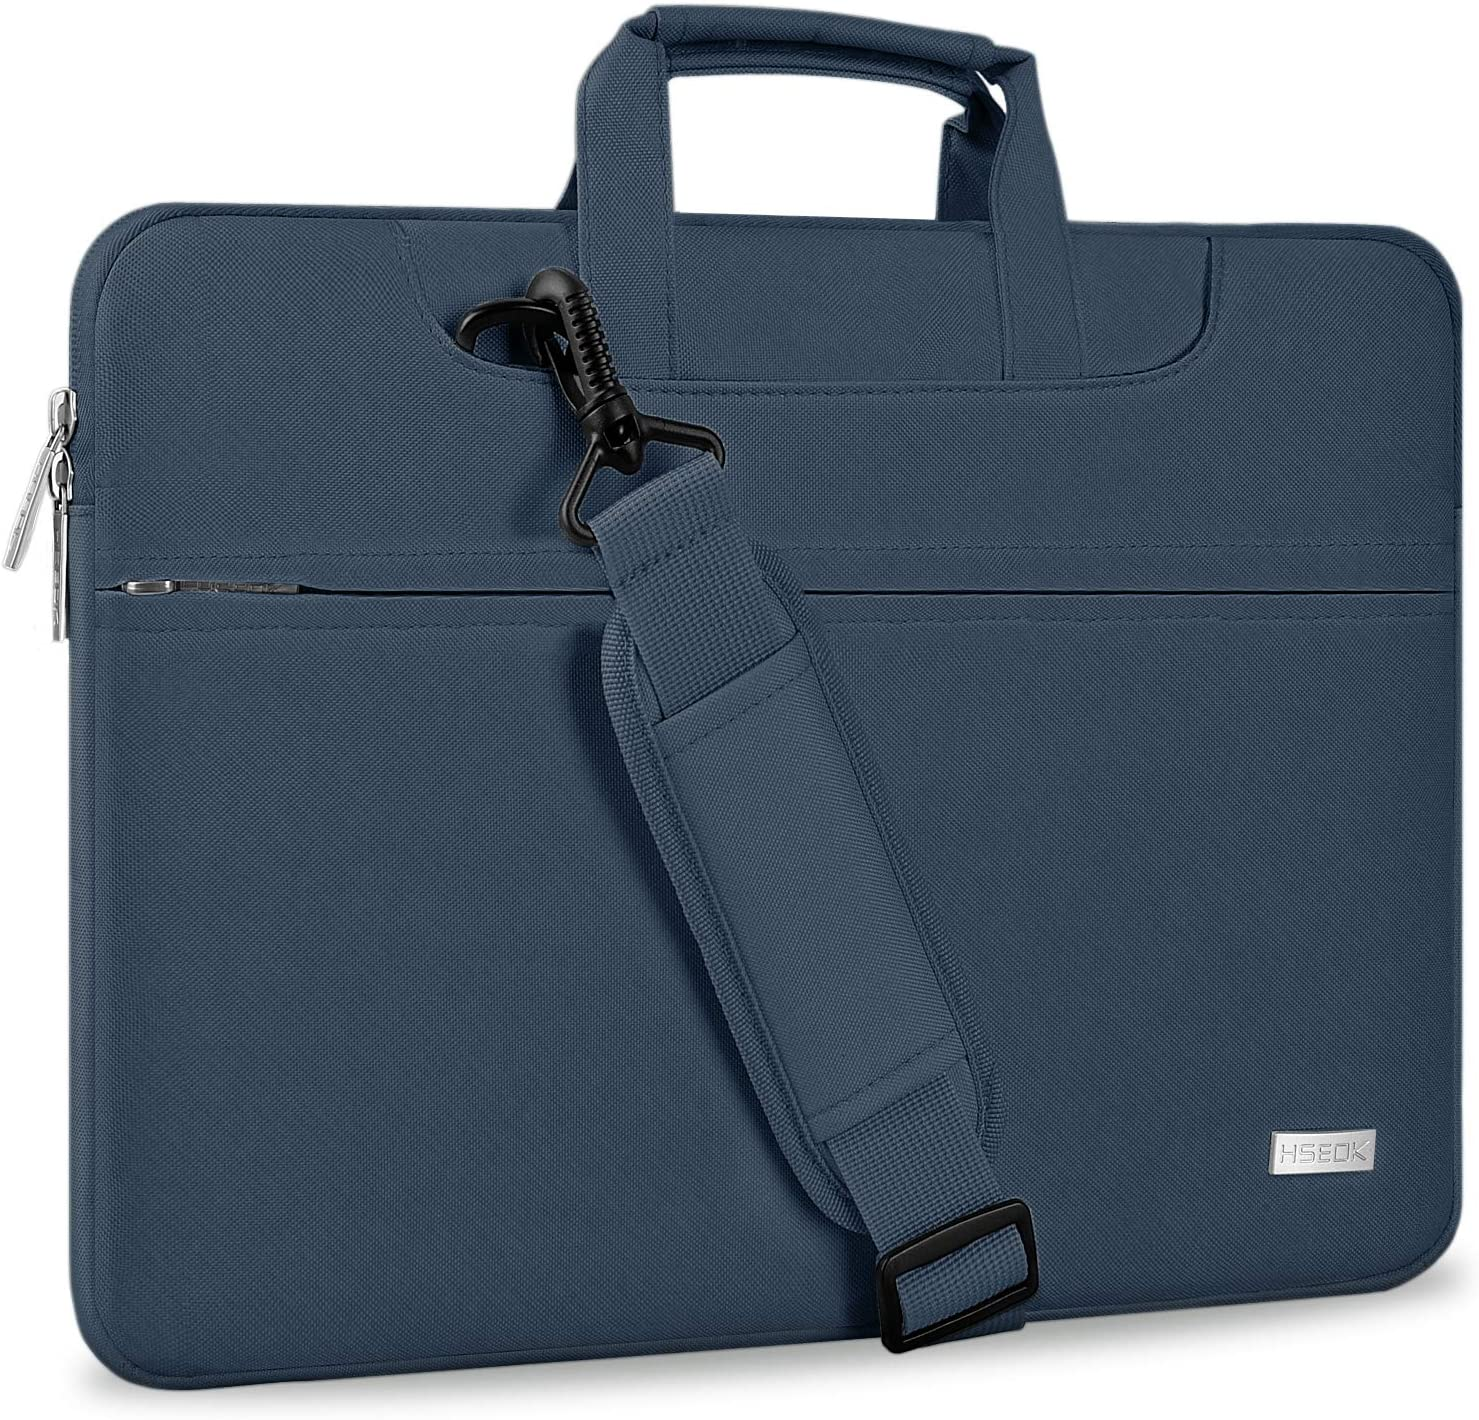 "Hseok Laptop Shoulder Bag 13 13.3 13.5 Inch Briefcase, Compatible 13.3 MacBook Air/Pro, XPS 13, Surface Book 13.5"" Spill-Resistant Handbag with Shoulder Strap for Most 13""-13.5"" Notebook, Dark Blue"